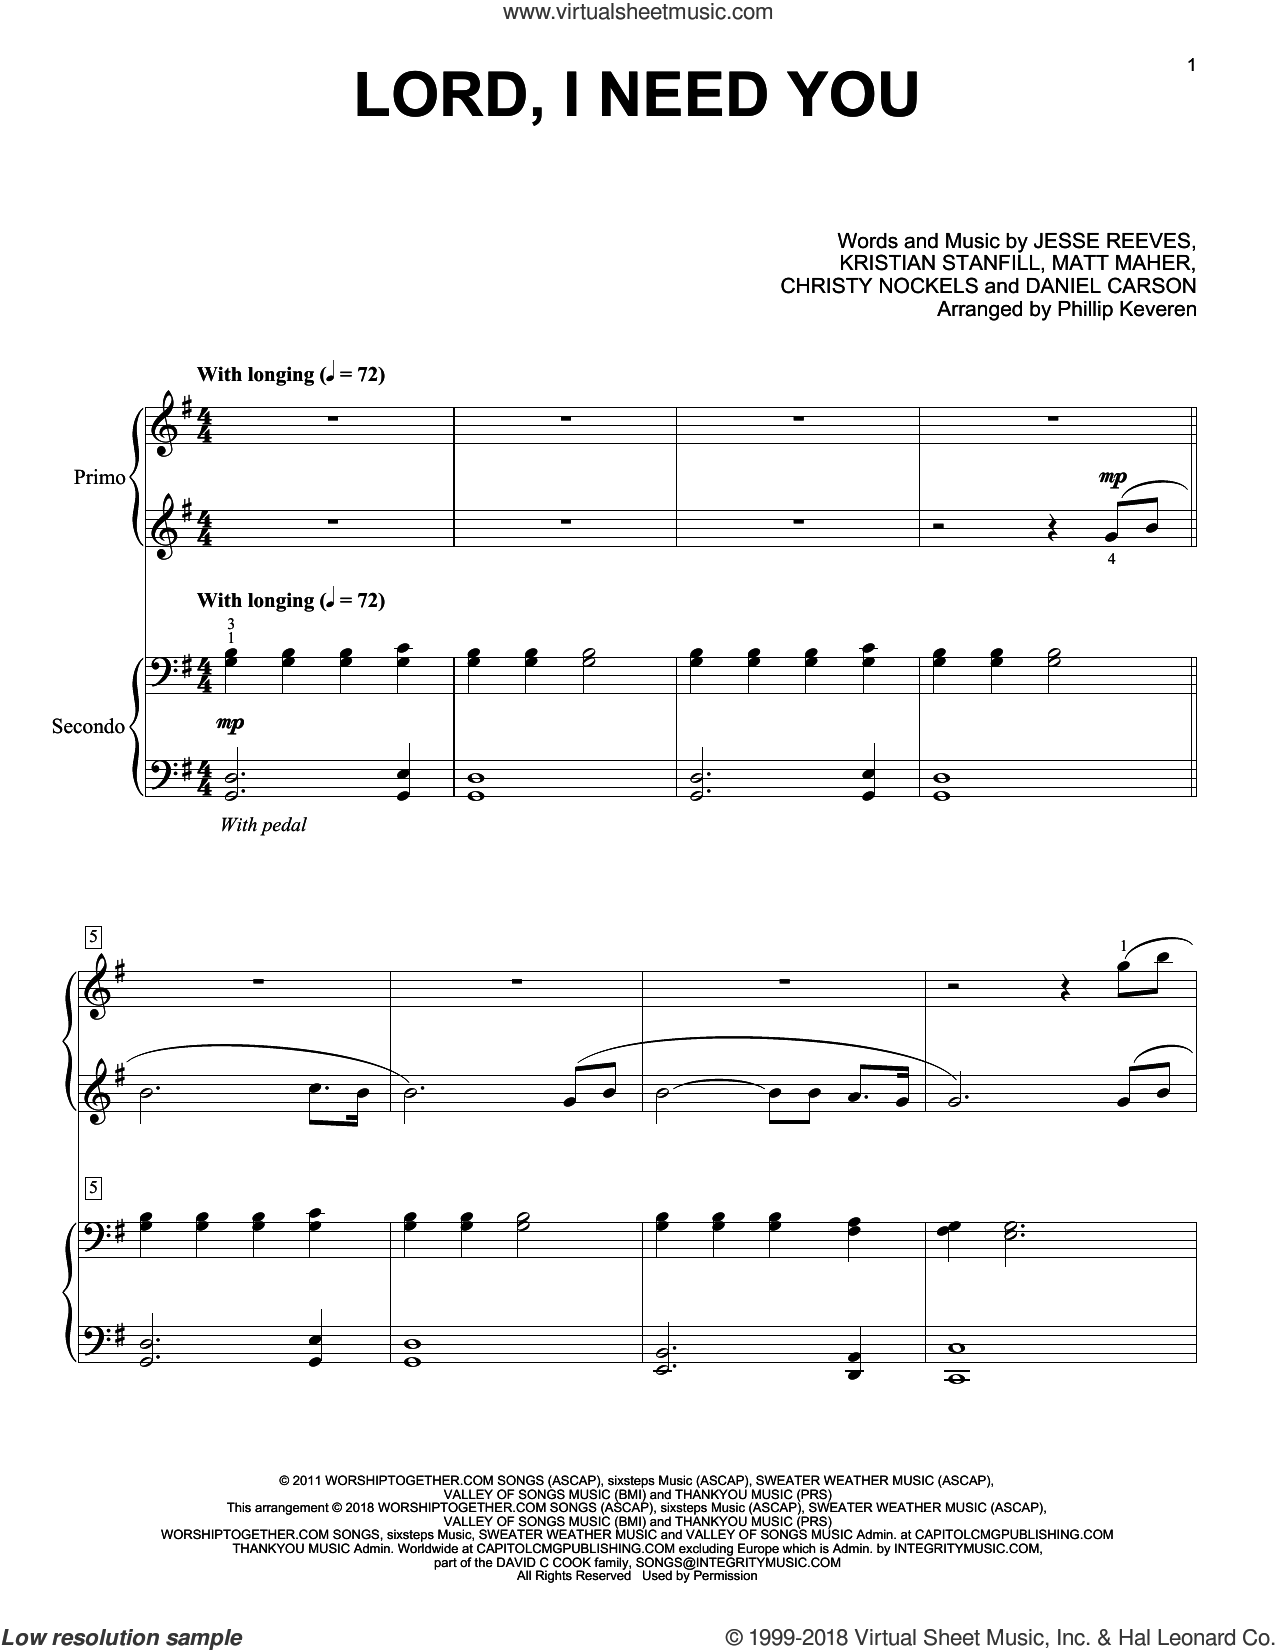 Lord, I Need You sheet music for piano four hands by Jesse Reeves, Phillip Keveren, Passion, Christy Nockels, Daniel Carson, Kristian Stanfill and Matt Maher, intermediate skill level